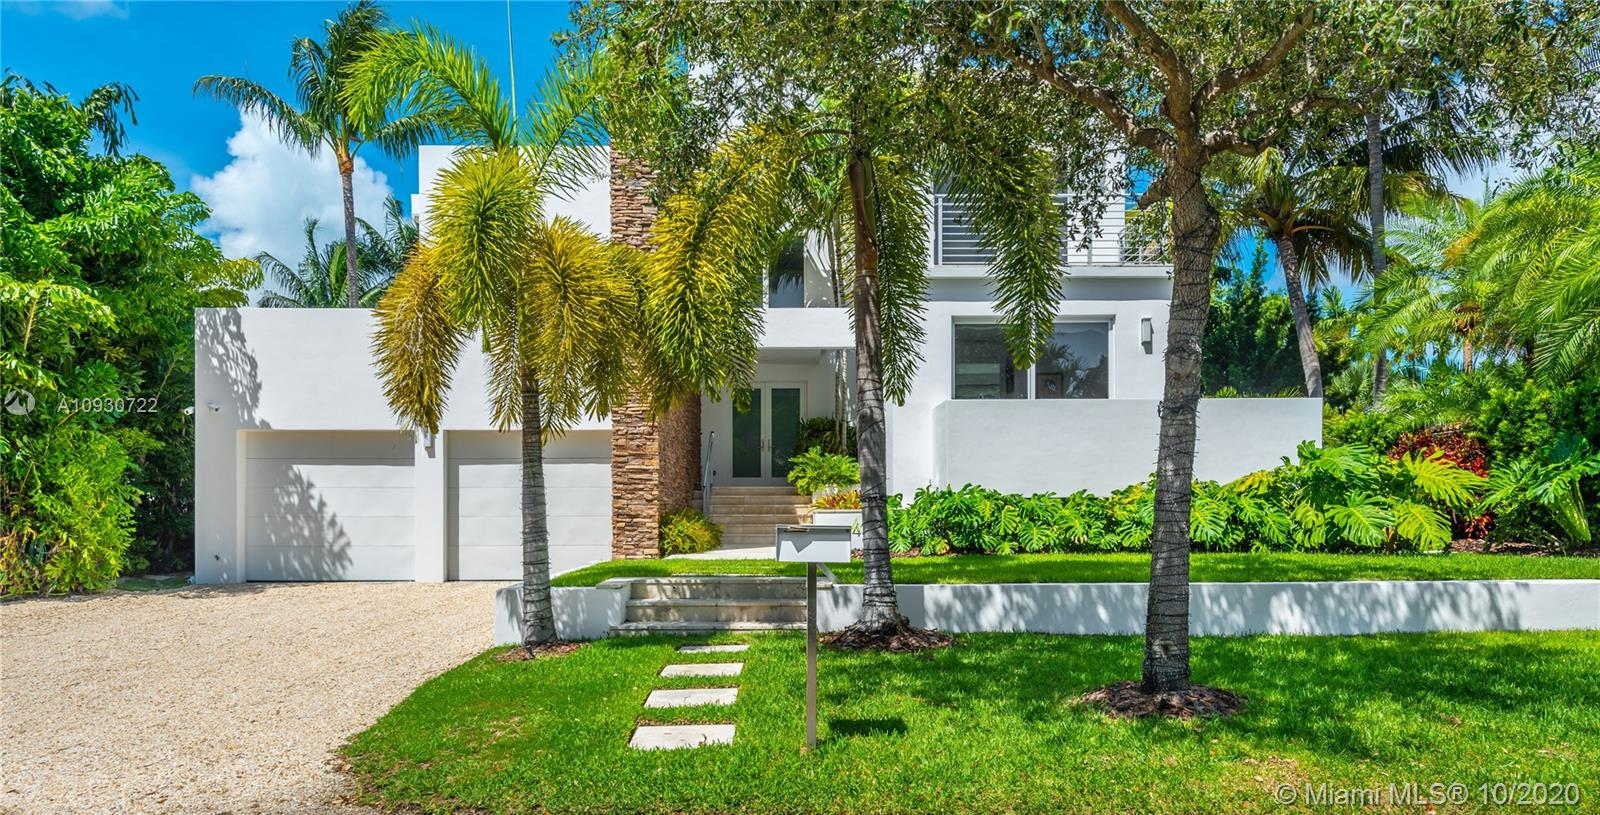 Stunning modern residence on island paradise, Key Biscayne.  This beautiful and elegant home offers tons of natural light, high ceilings, and spacious open areas.  An outstanding floor plan with 6 bedrooms, 5 full and 2 half baths, 2 car garage w/ AC, separate staff wing, gorgeous backyard with lush landscaping for privacy, lap pool, outdoor kitchen bbq area for al fresco dining, private office, plus an oversized rooftop terrace with amazing sunset views ready for outdoor parties with its own bar and bathroom.  Truly unique family-friendly smart home that offers flexibility to utilize the spaces in so many ways. Rare to find an elevated, reinforced concrete home full of architectural features, with a garage for your toys, on a quiet street, and with so many living and entertaining options.